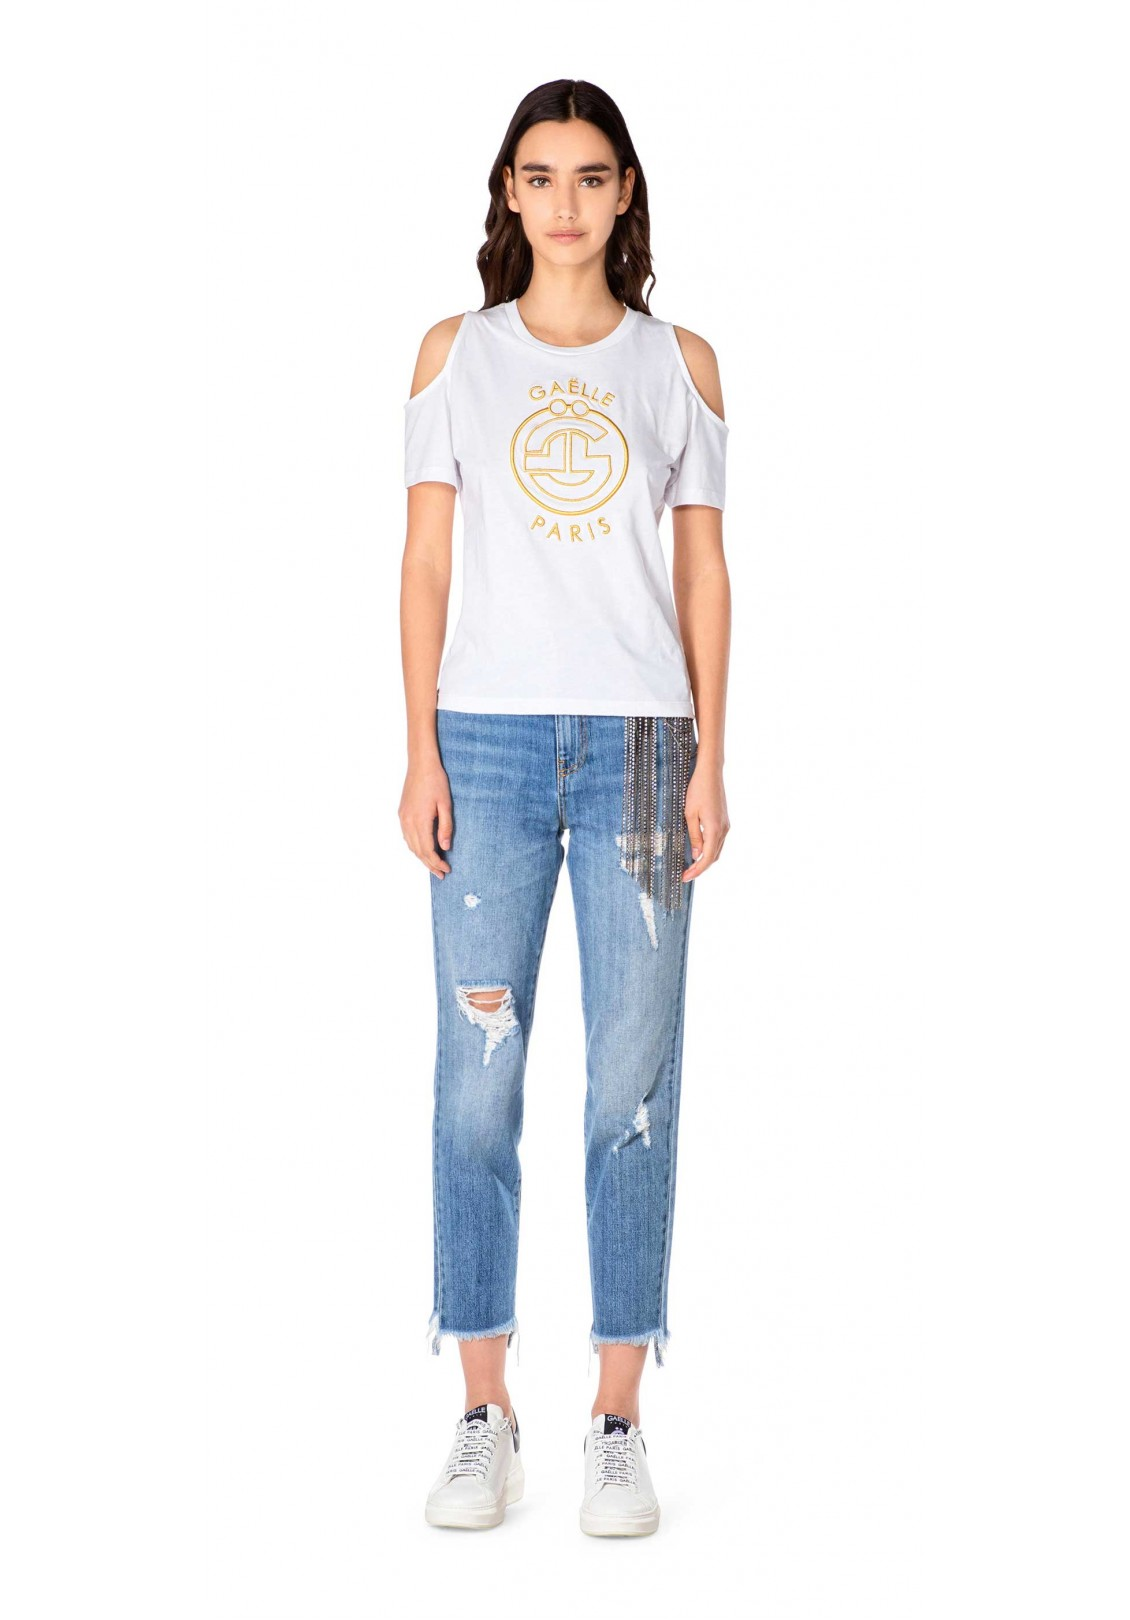 T-SHIRT - GBD8666 - GAELLE PARIS